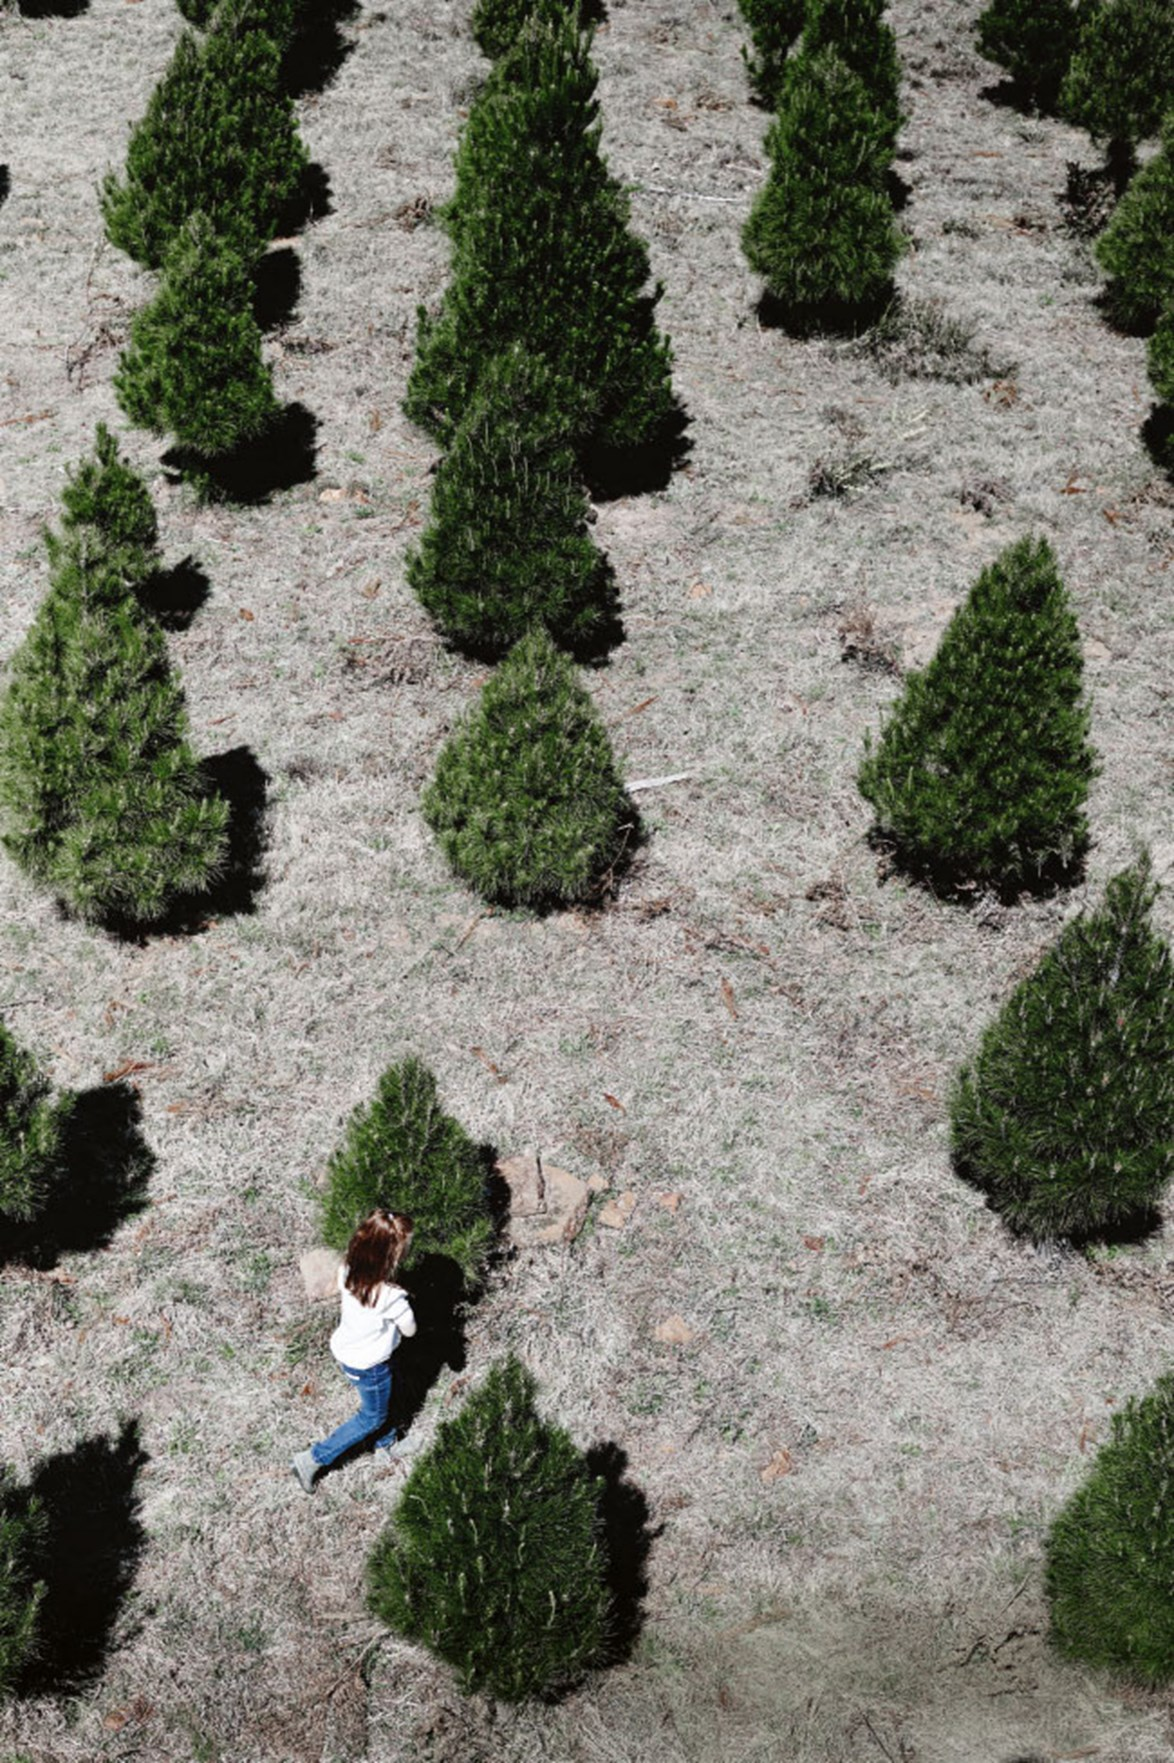 Pine trees are farmed specifically for the Christmas season. As they grow, they filter the air and absorb carbon. They are also 100% recyclable.*Photo: Mark Roper*